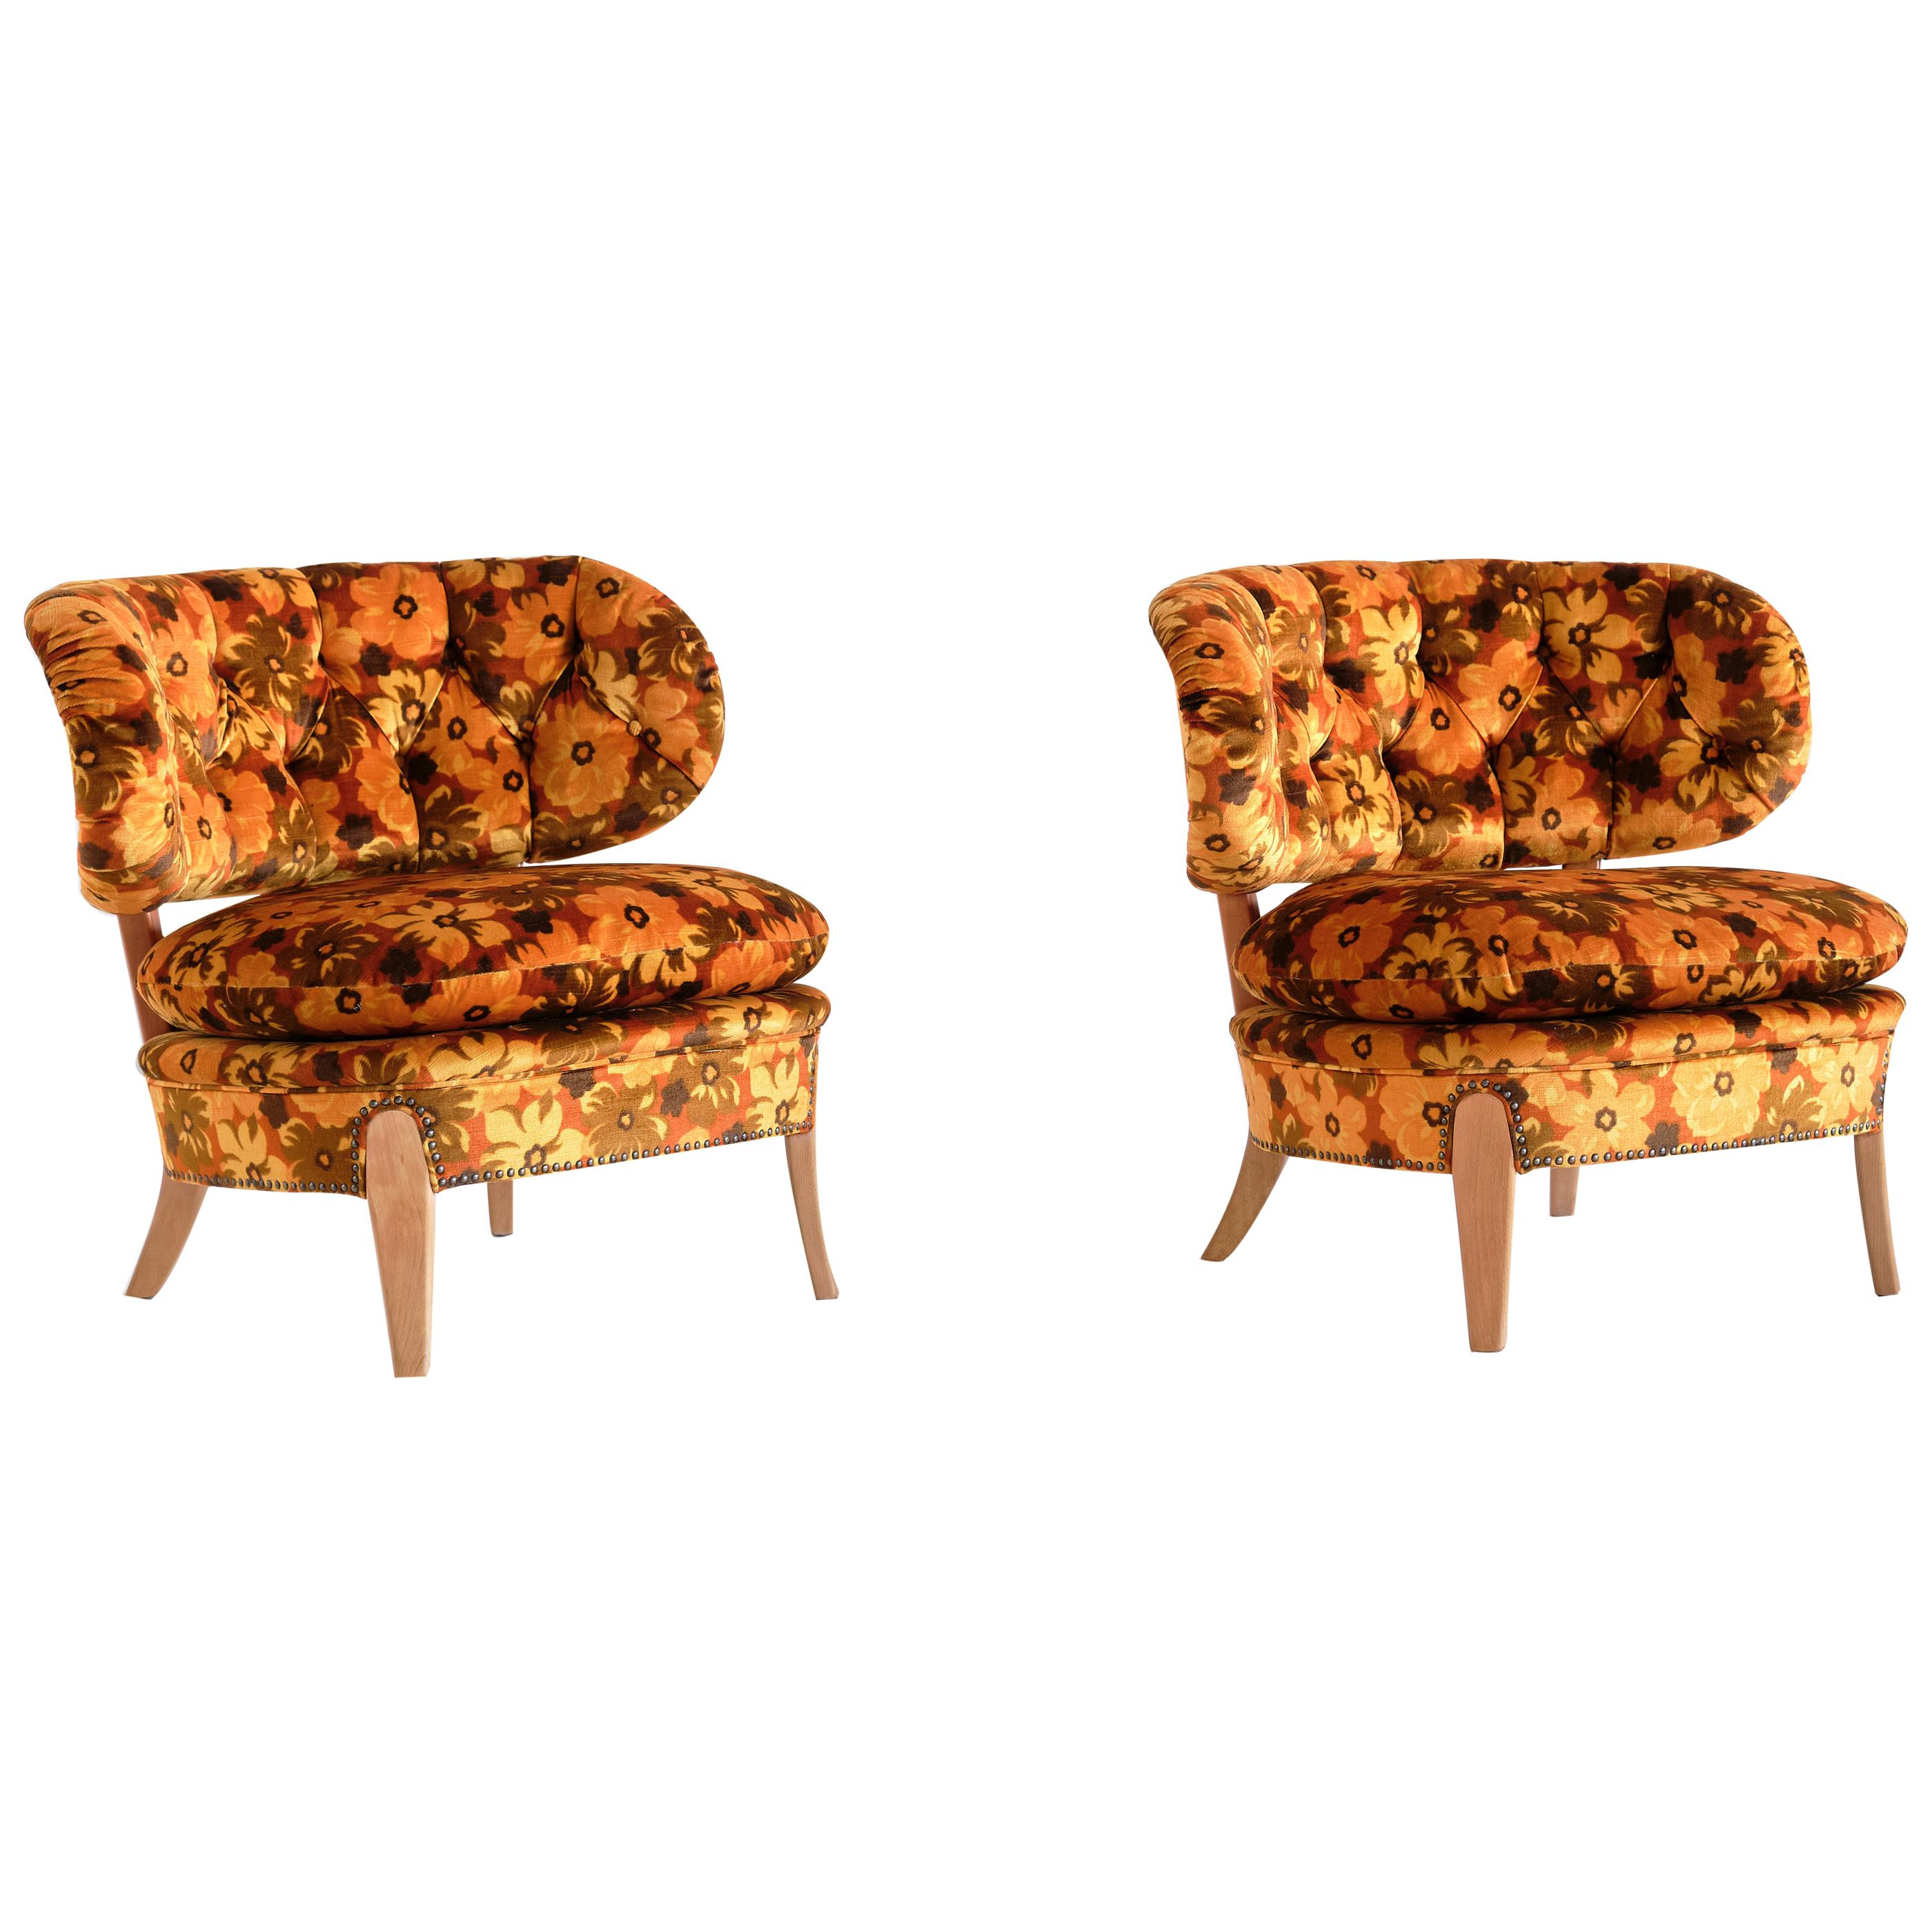 Pair of Otto Schulz Lounge Chairs in Floral Velvet and Beech, Sweden, 1940s